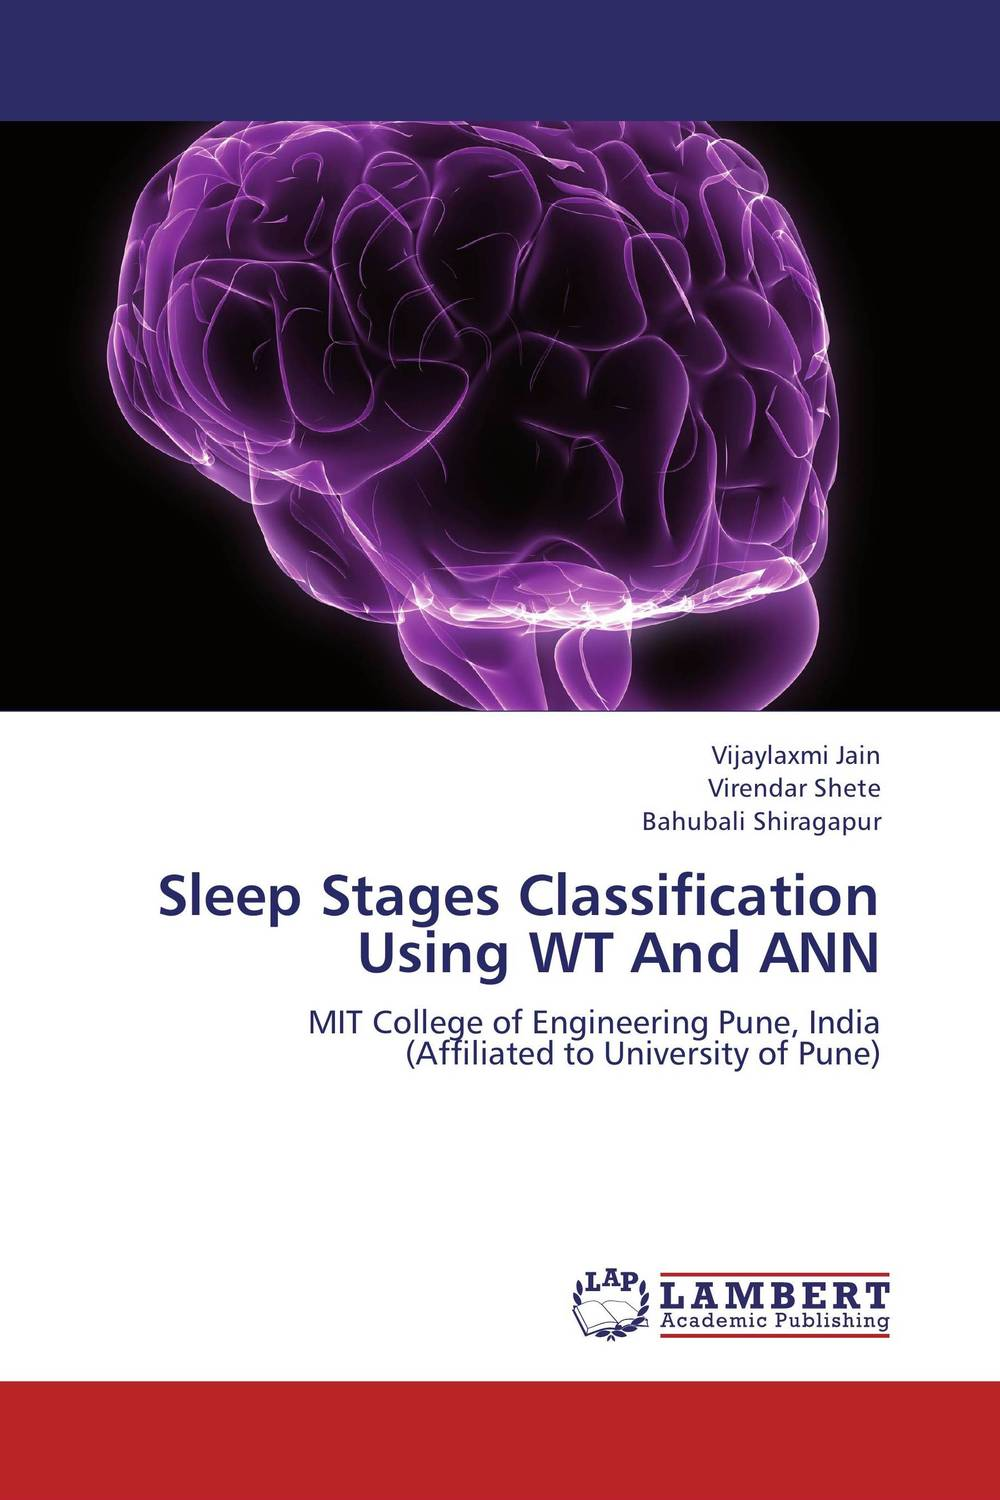 Sleep Stages Classification Using WT And ANN user preference extraction from brain signals